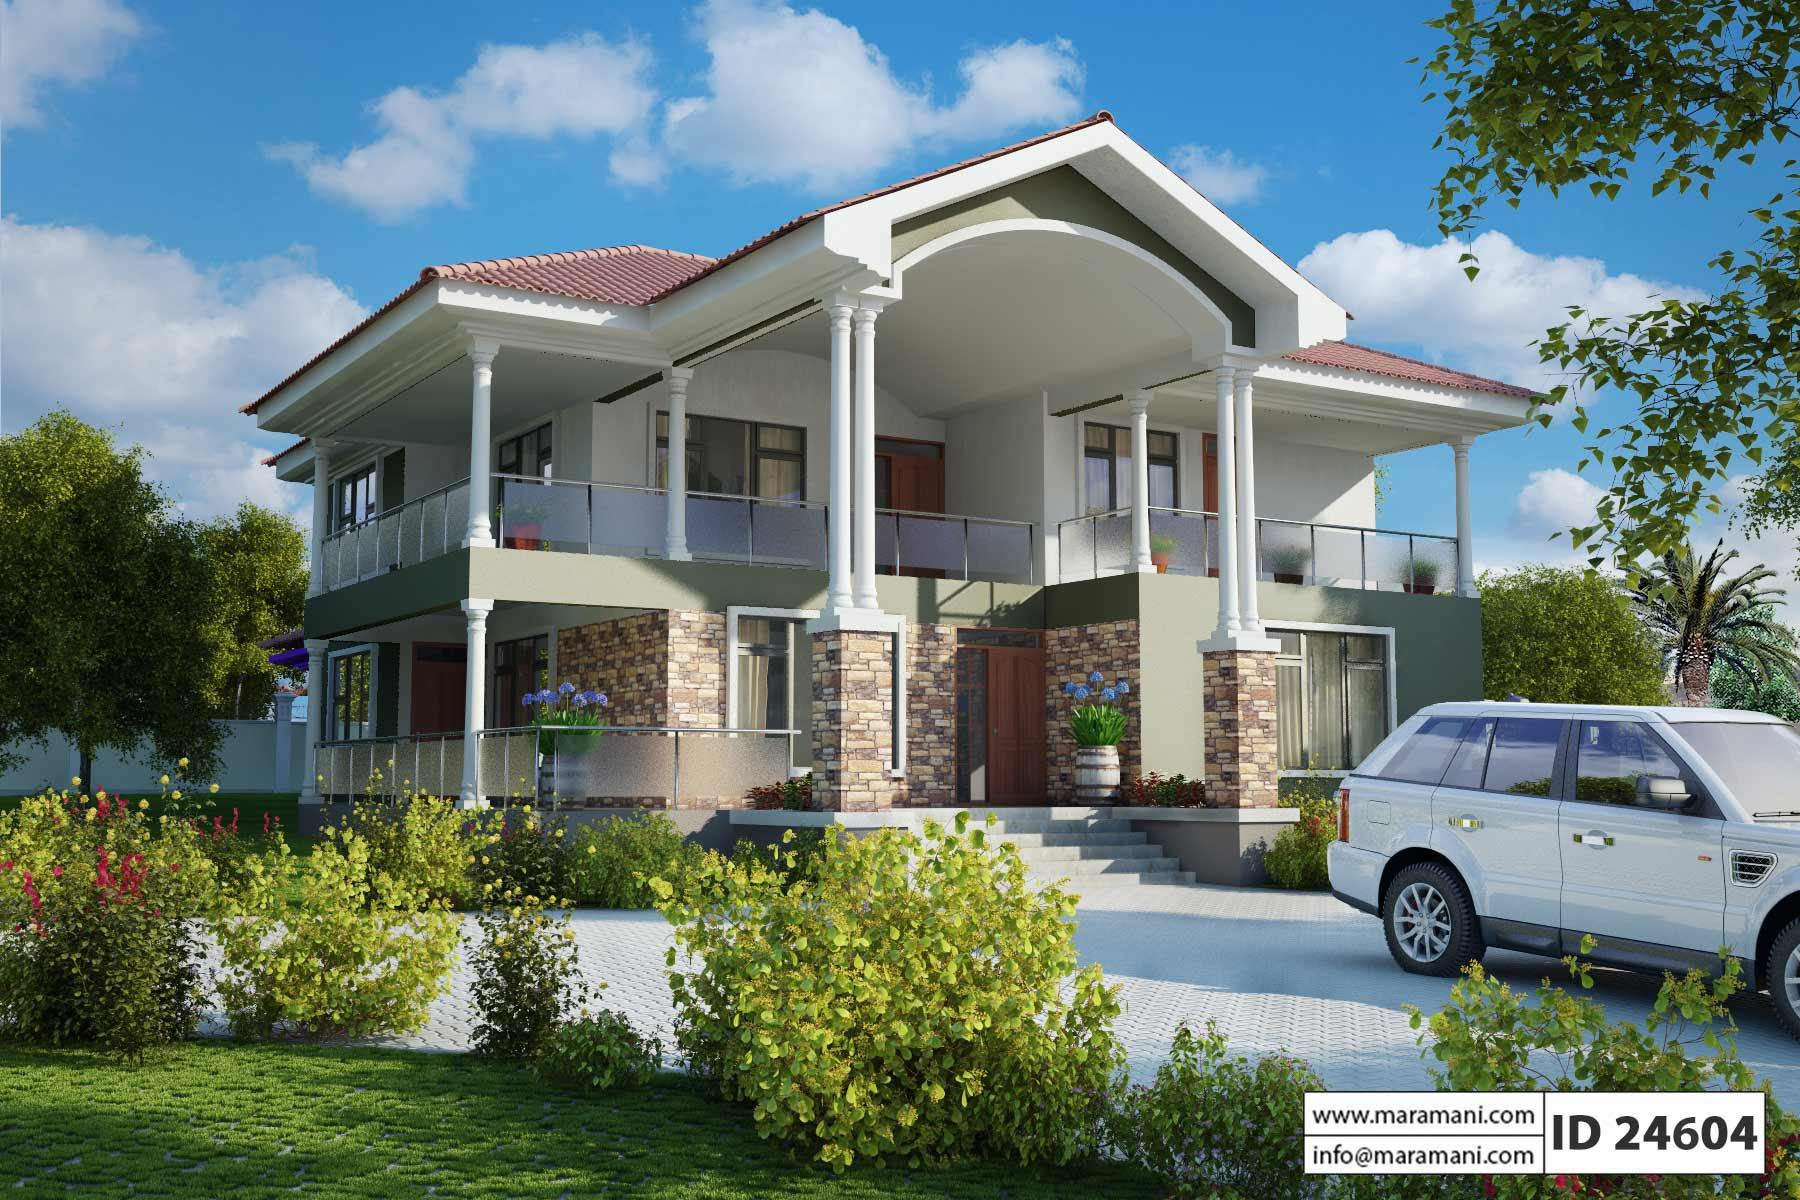 4 Bedroom House Plan - ID 24604 on